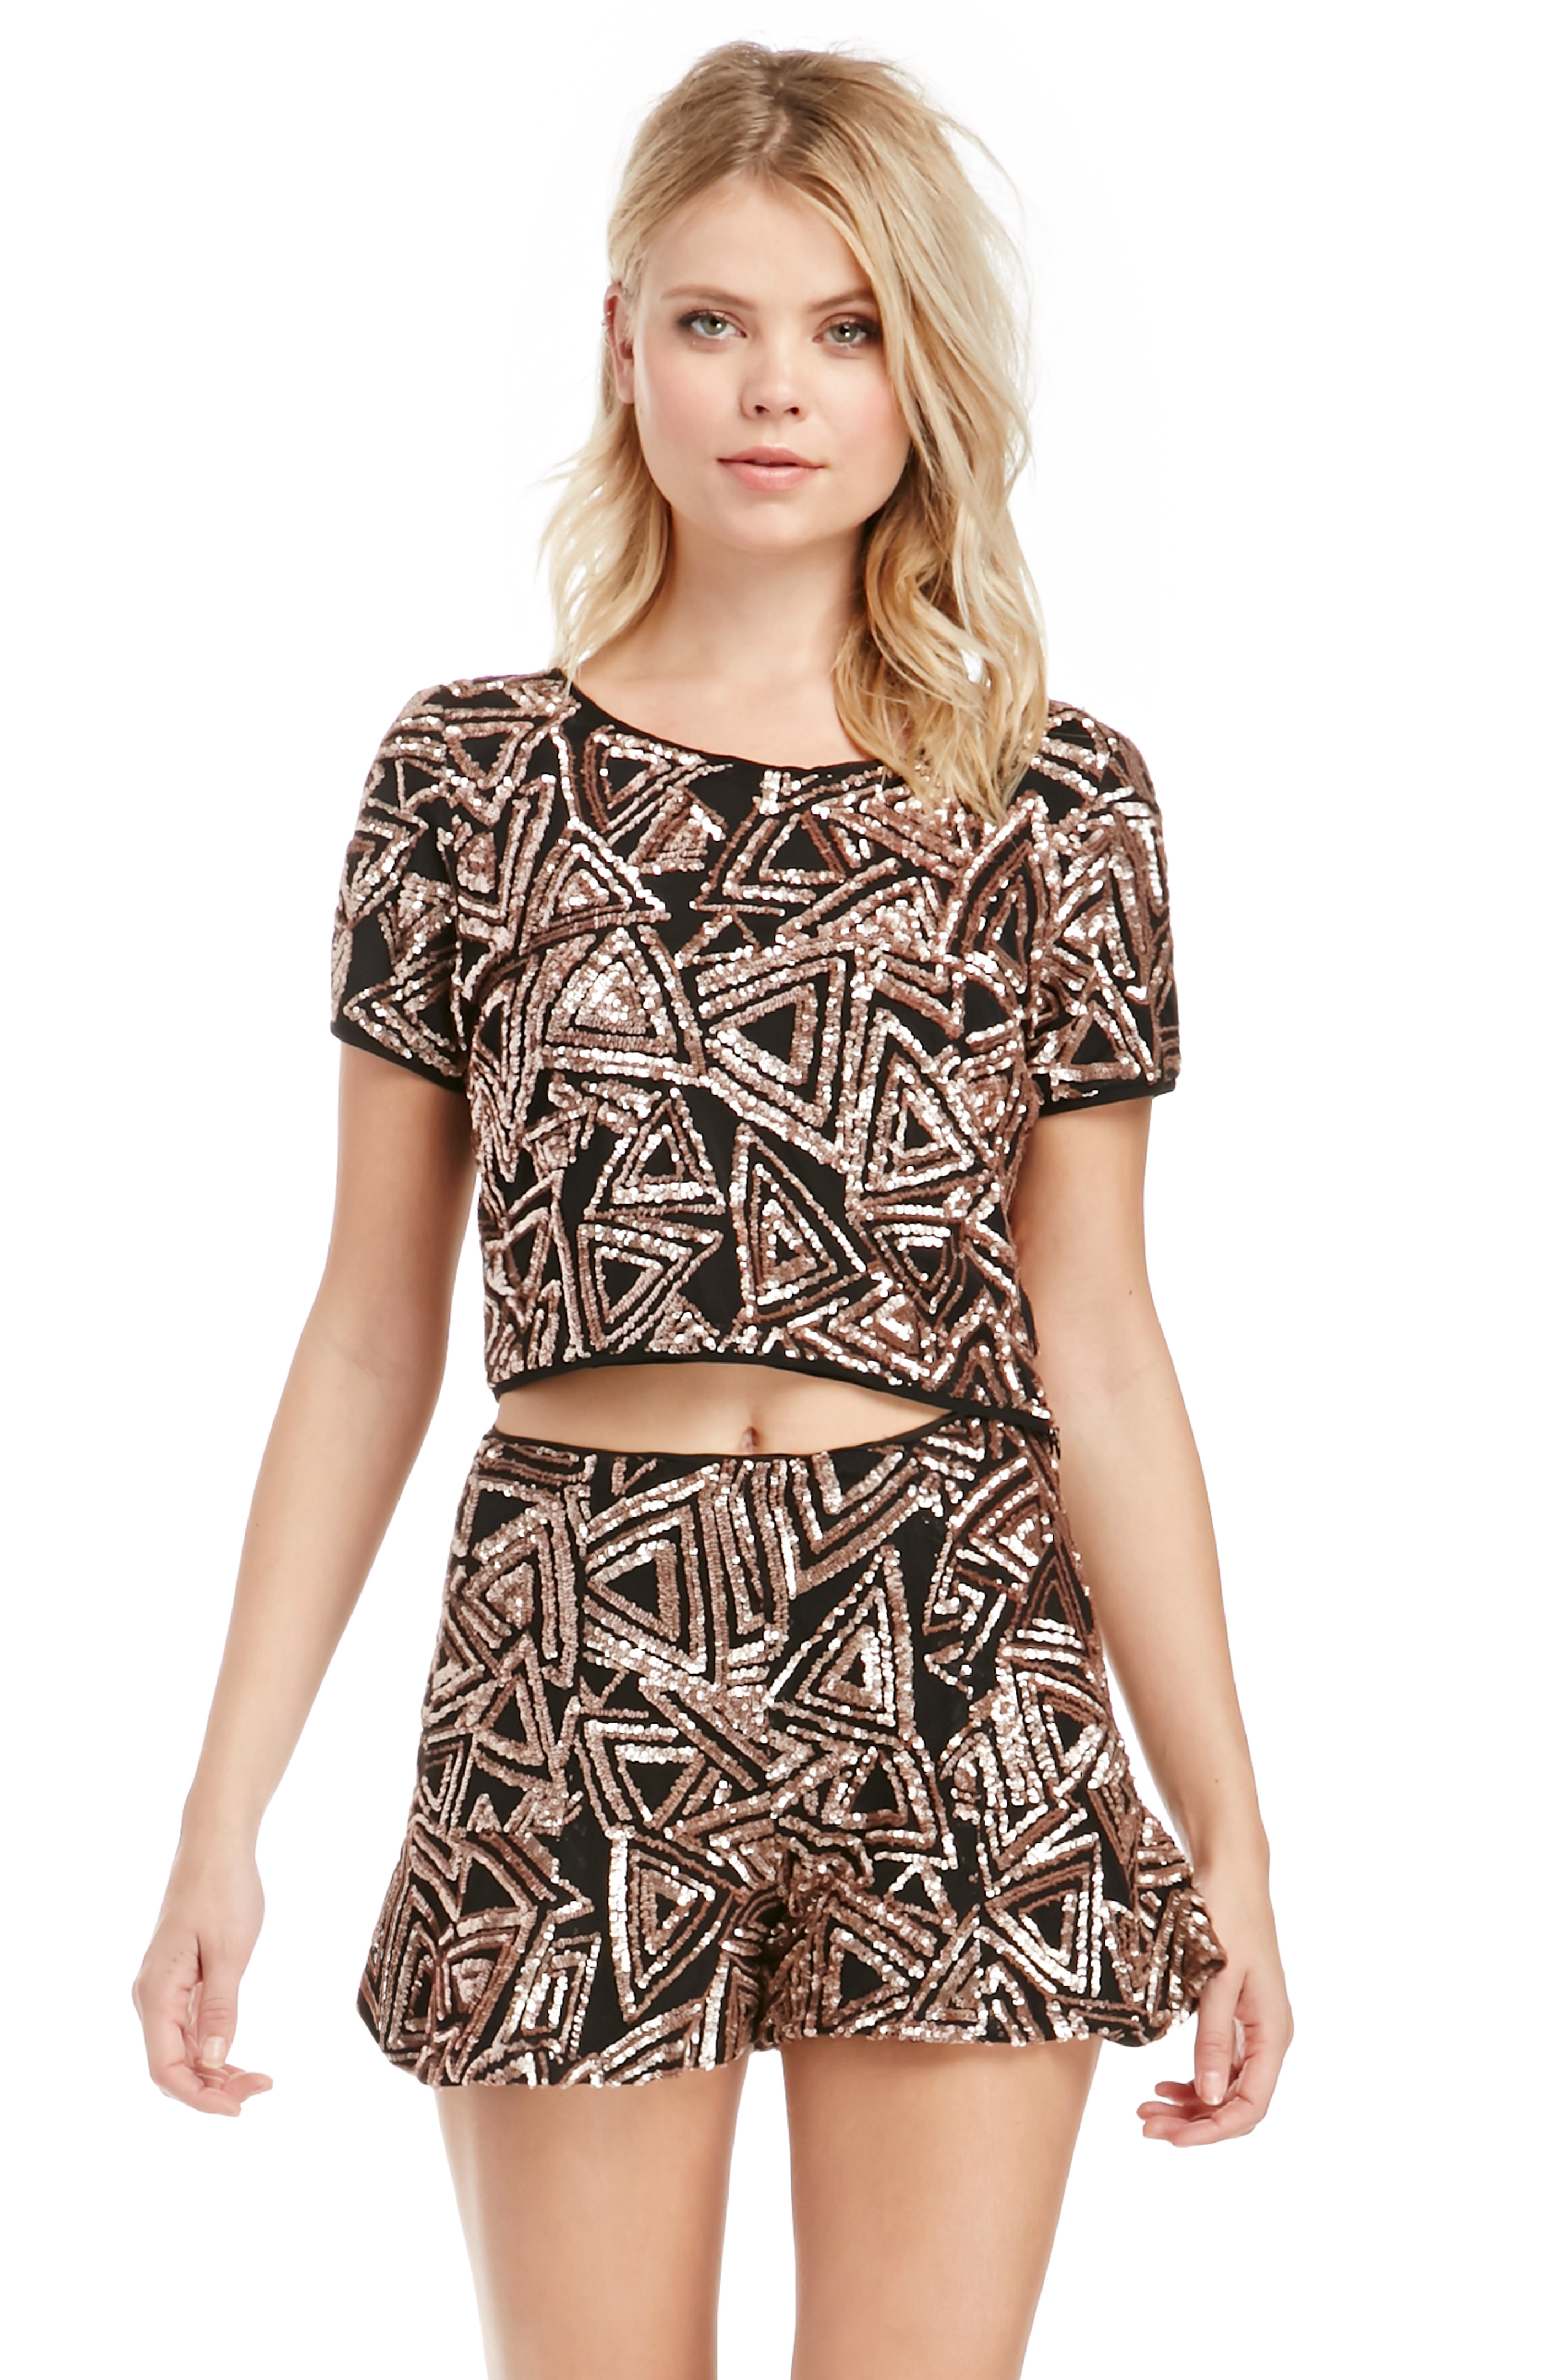 Lucy Paris Sequin Flouncy Shorts in Copper S - L at DAILYLOOK